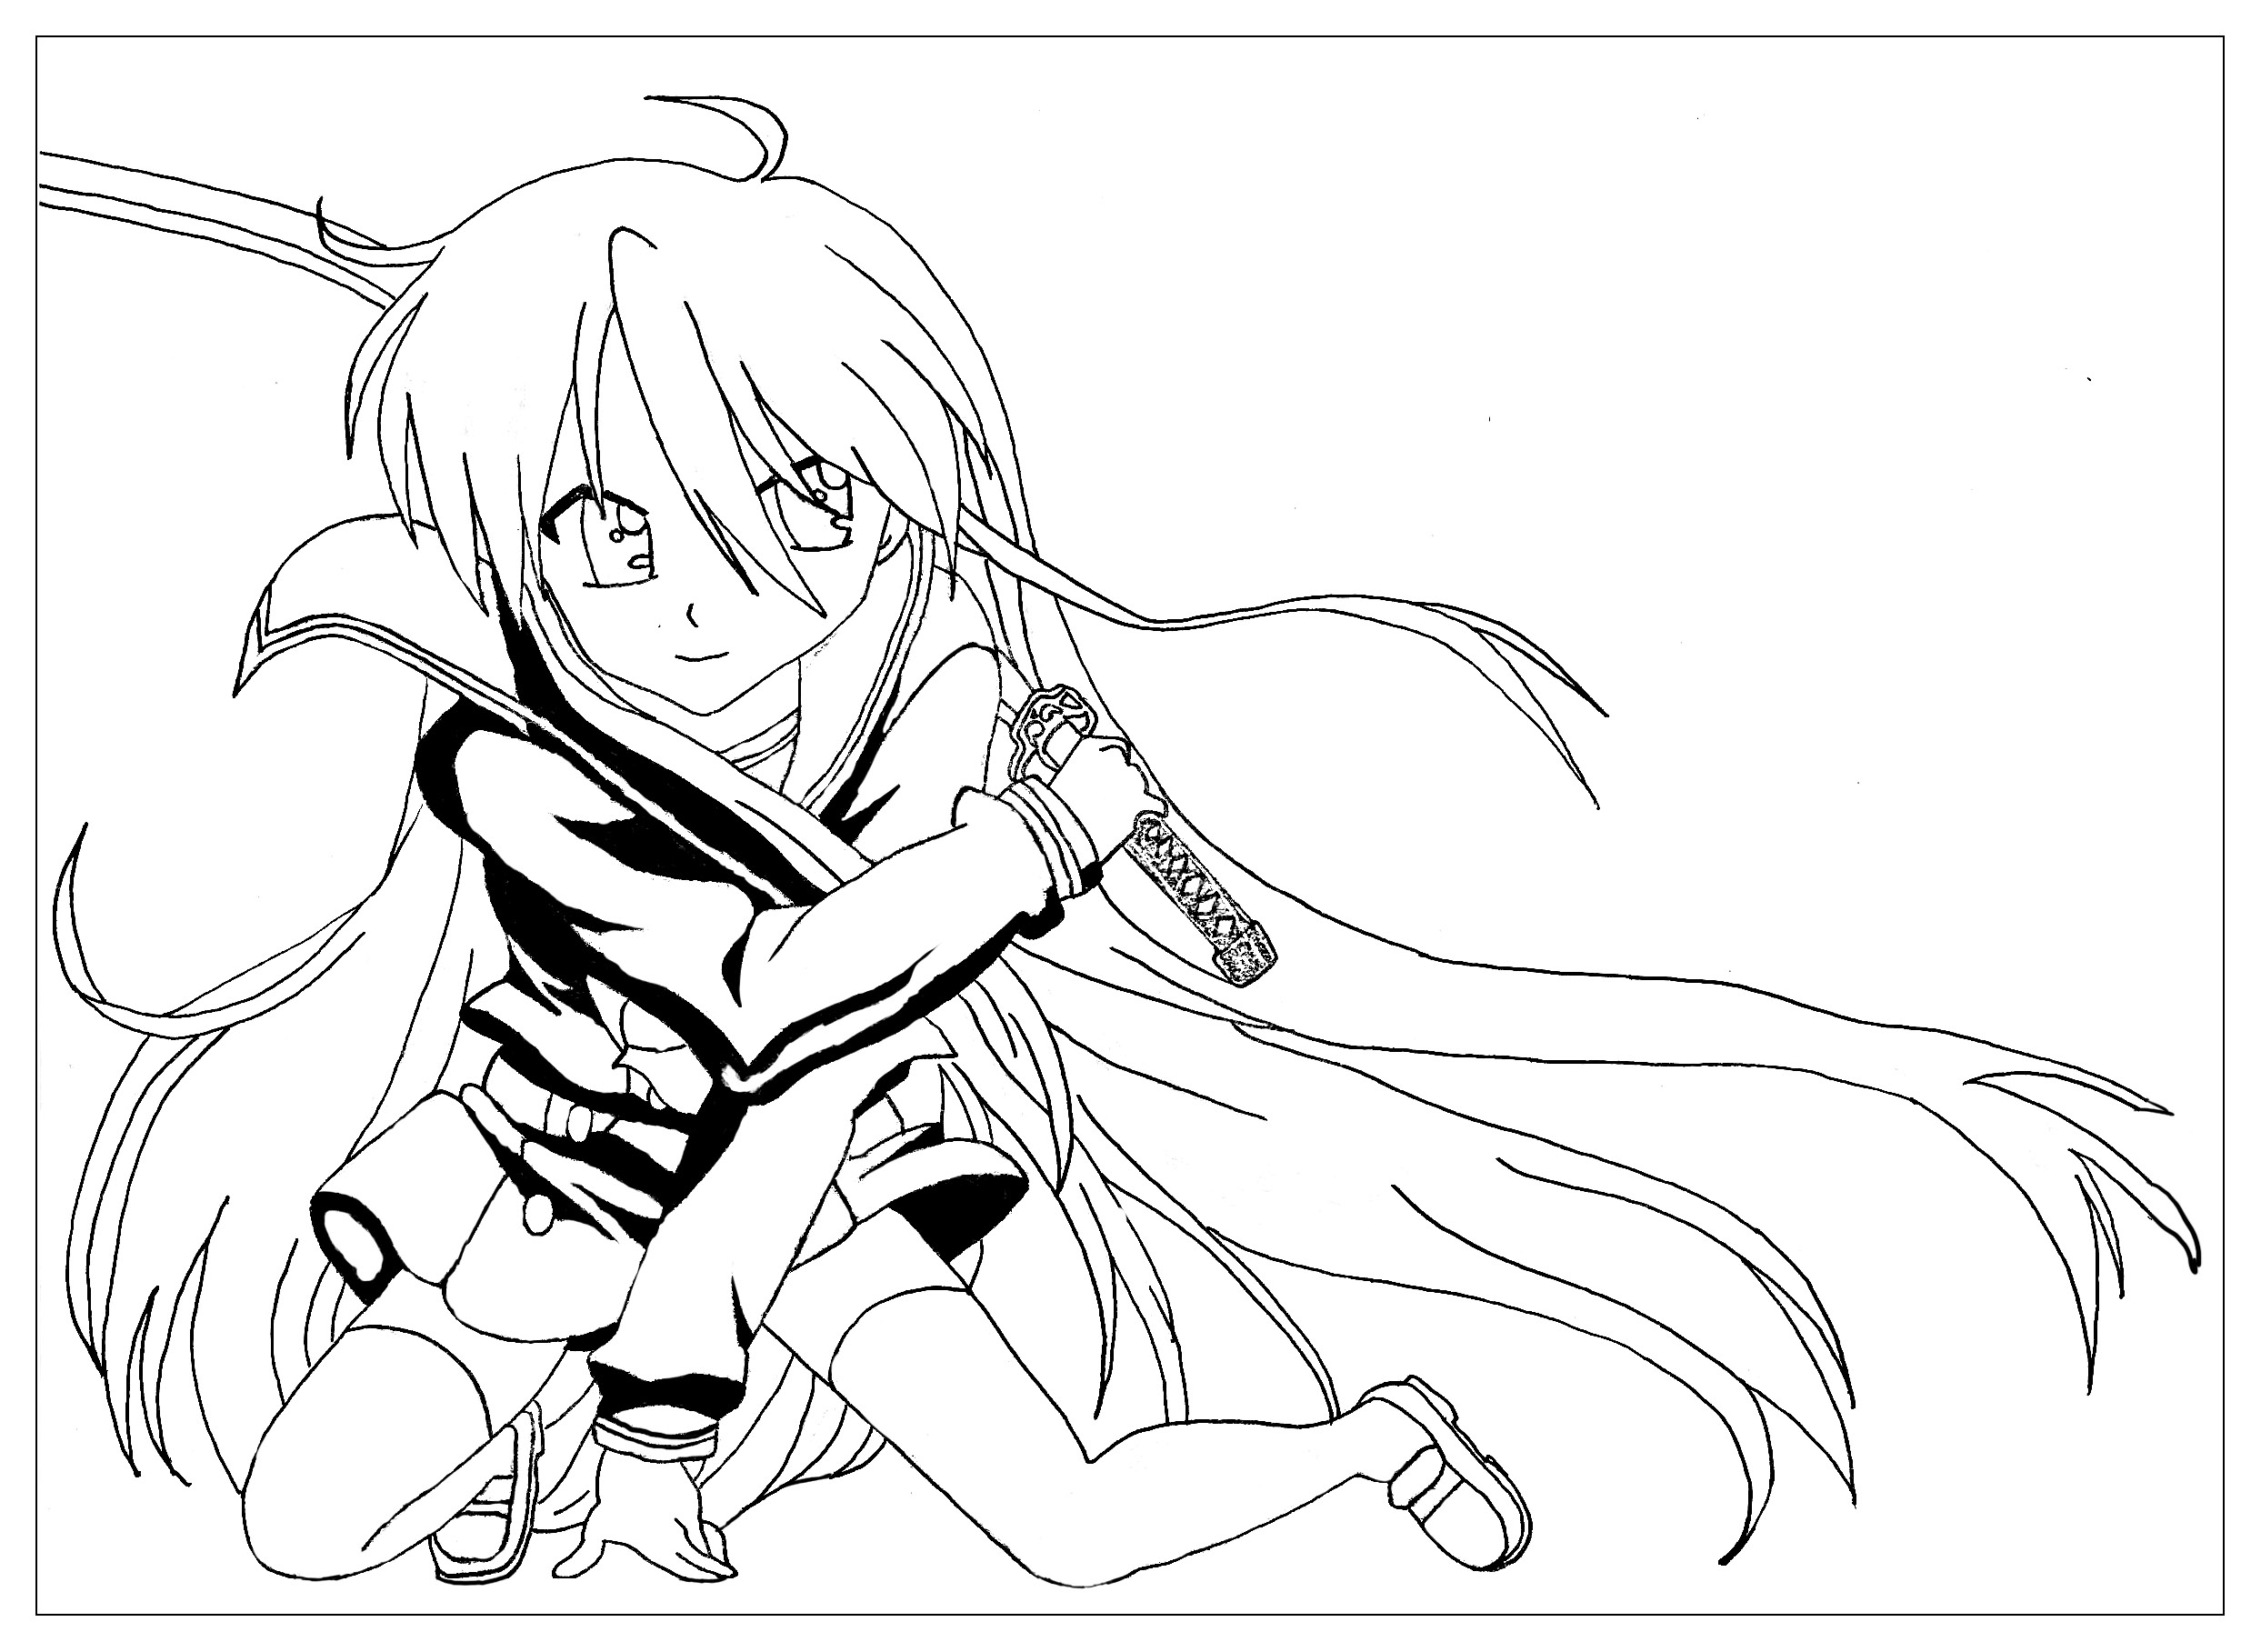 Manga saber warrior girl Manga Anime Adult Coloring Pages